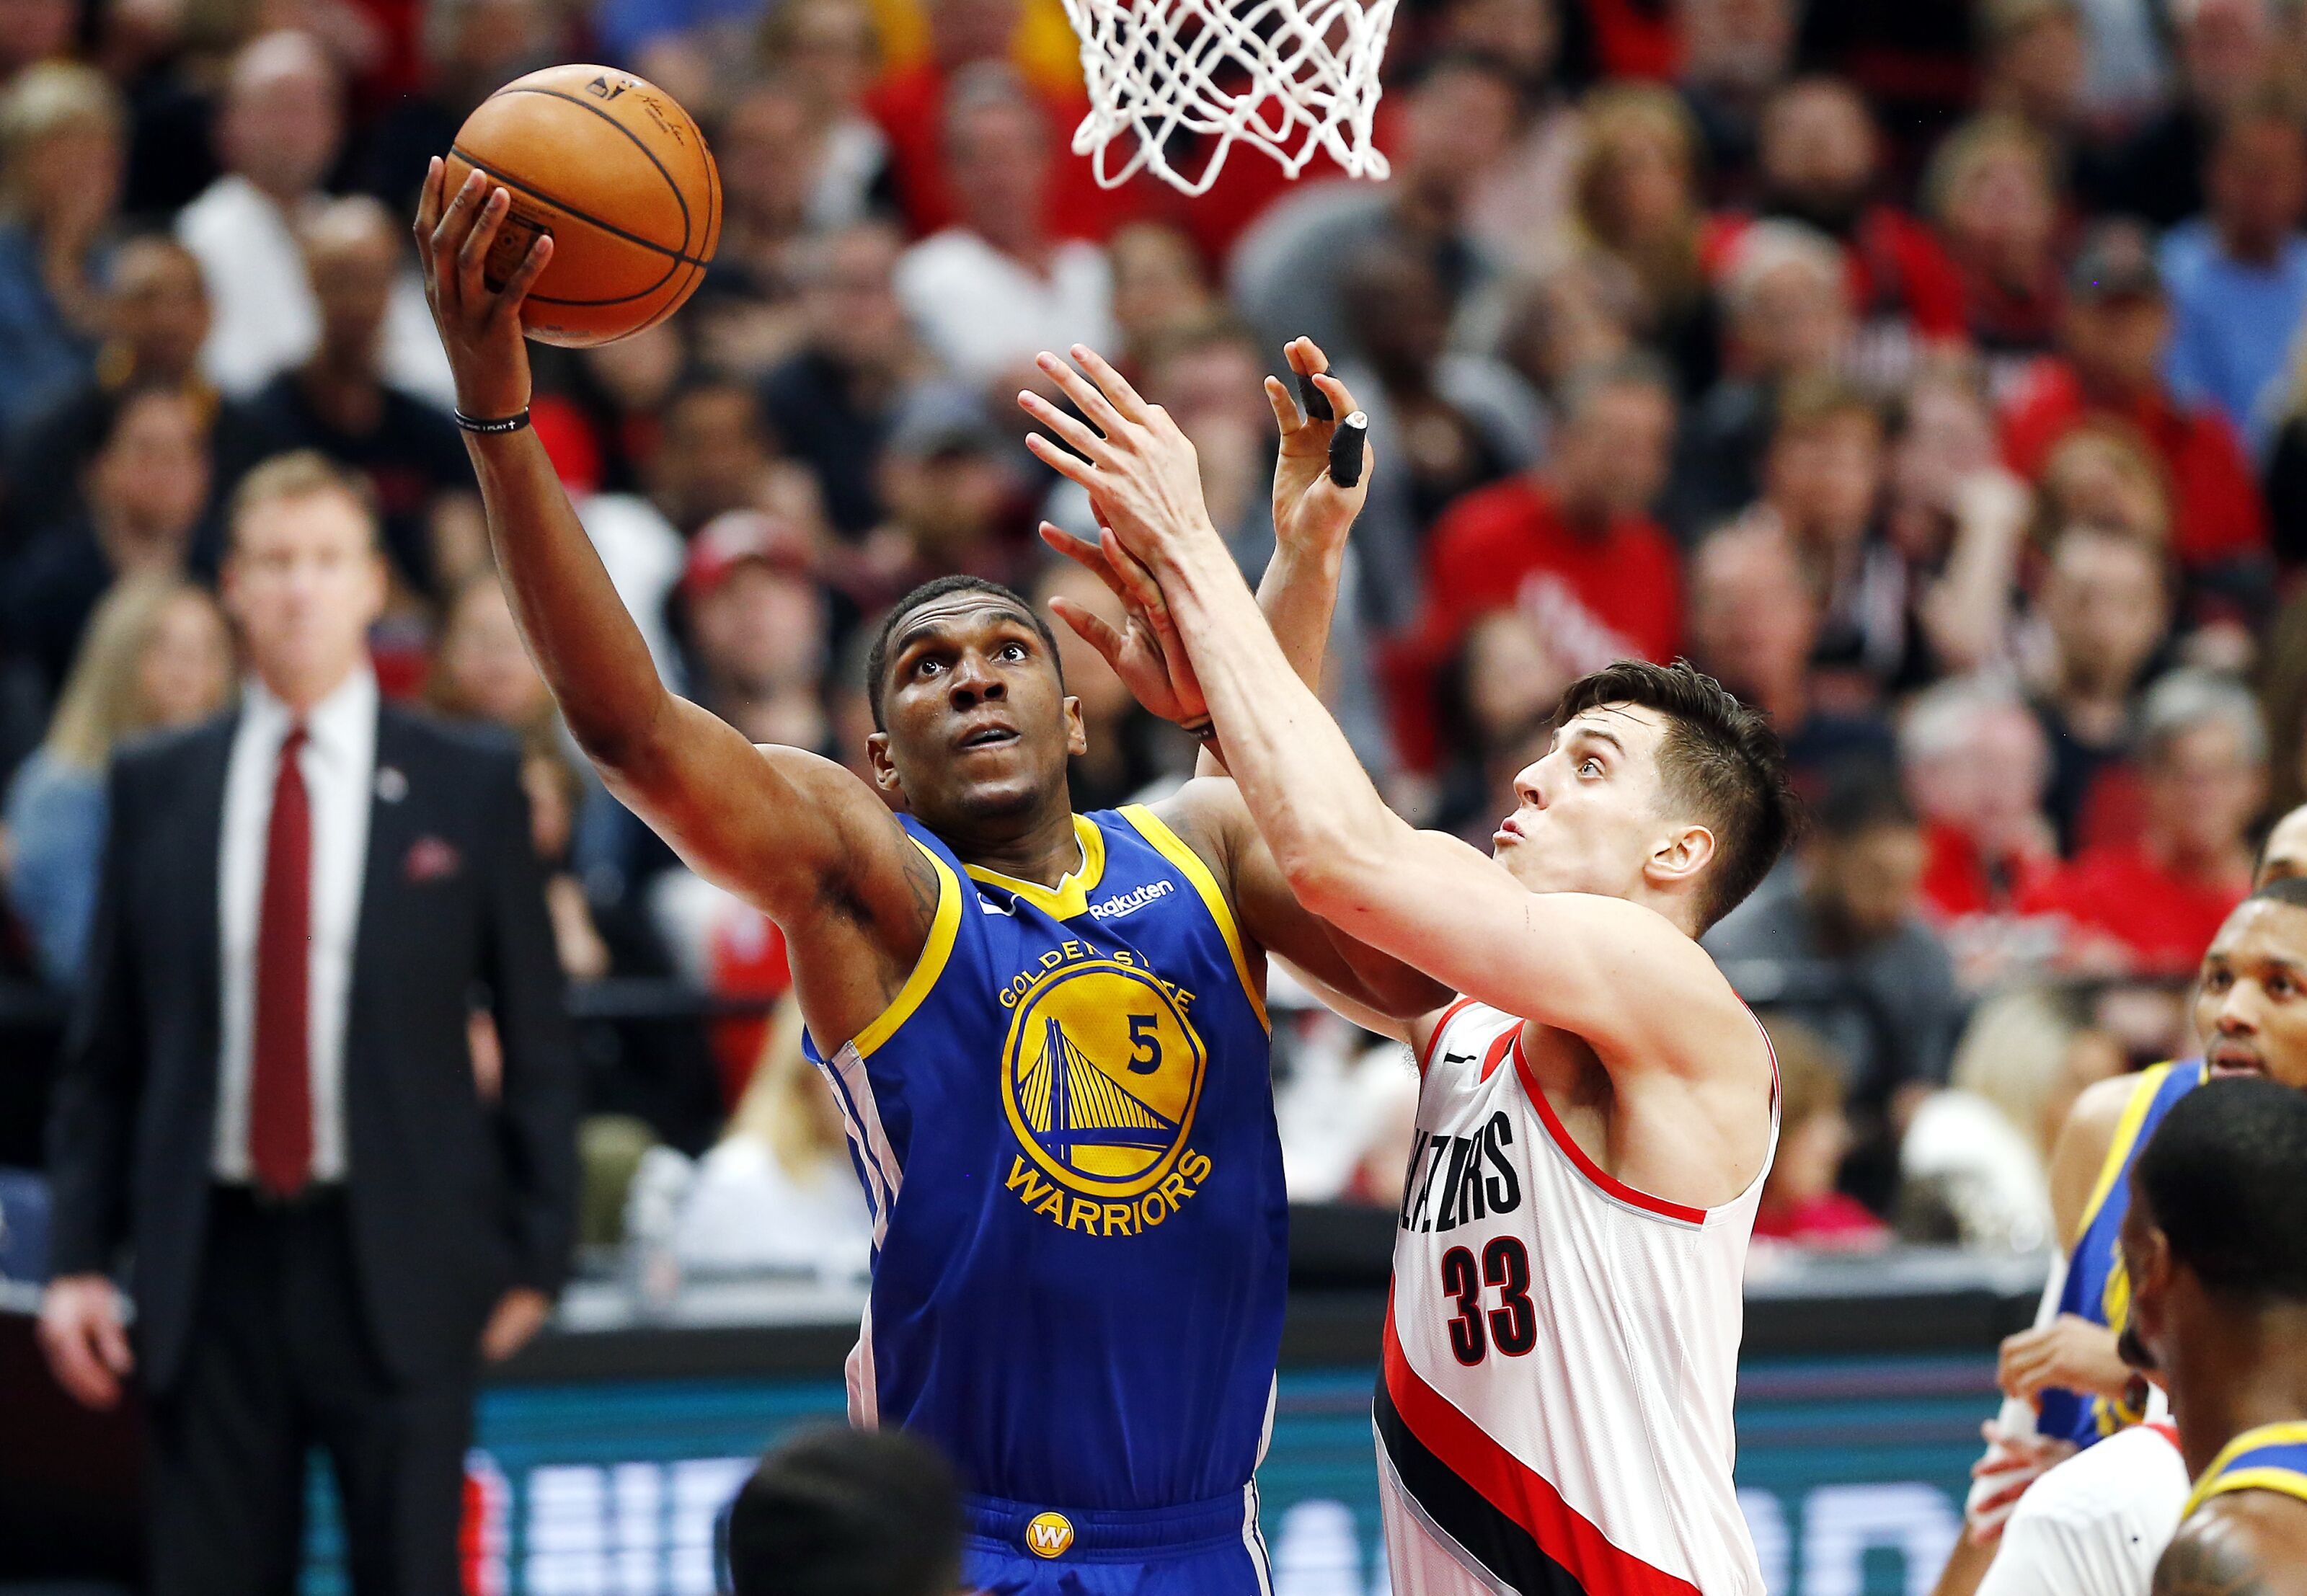 Golden State Warriors: Kevon Looney's status remains up in the air